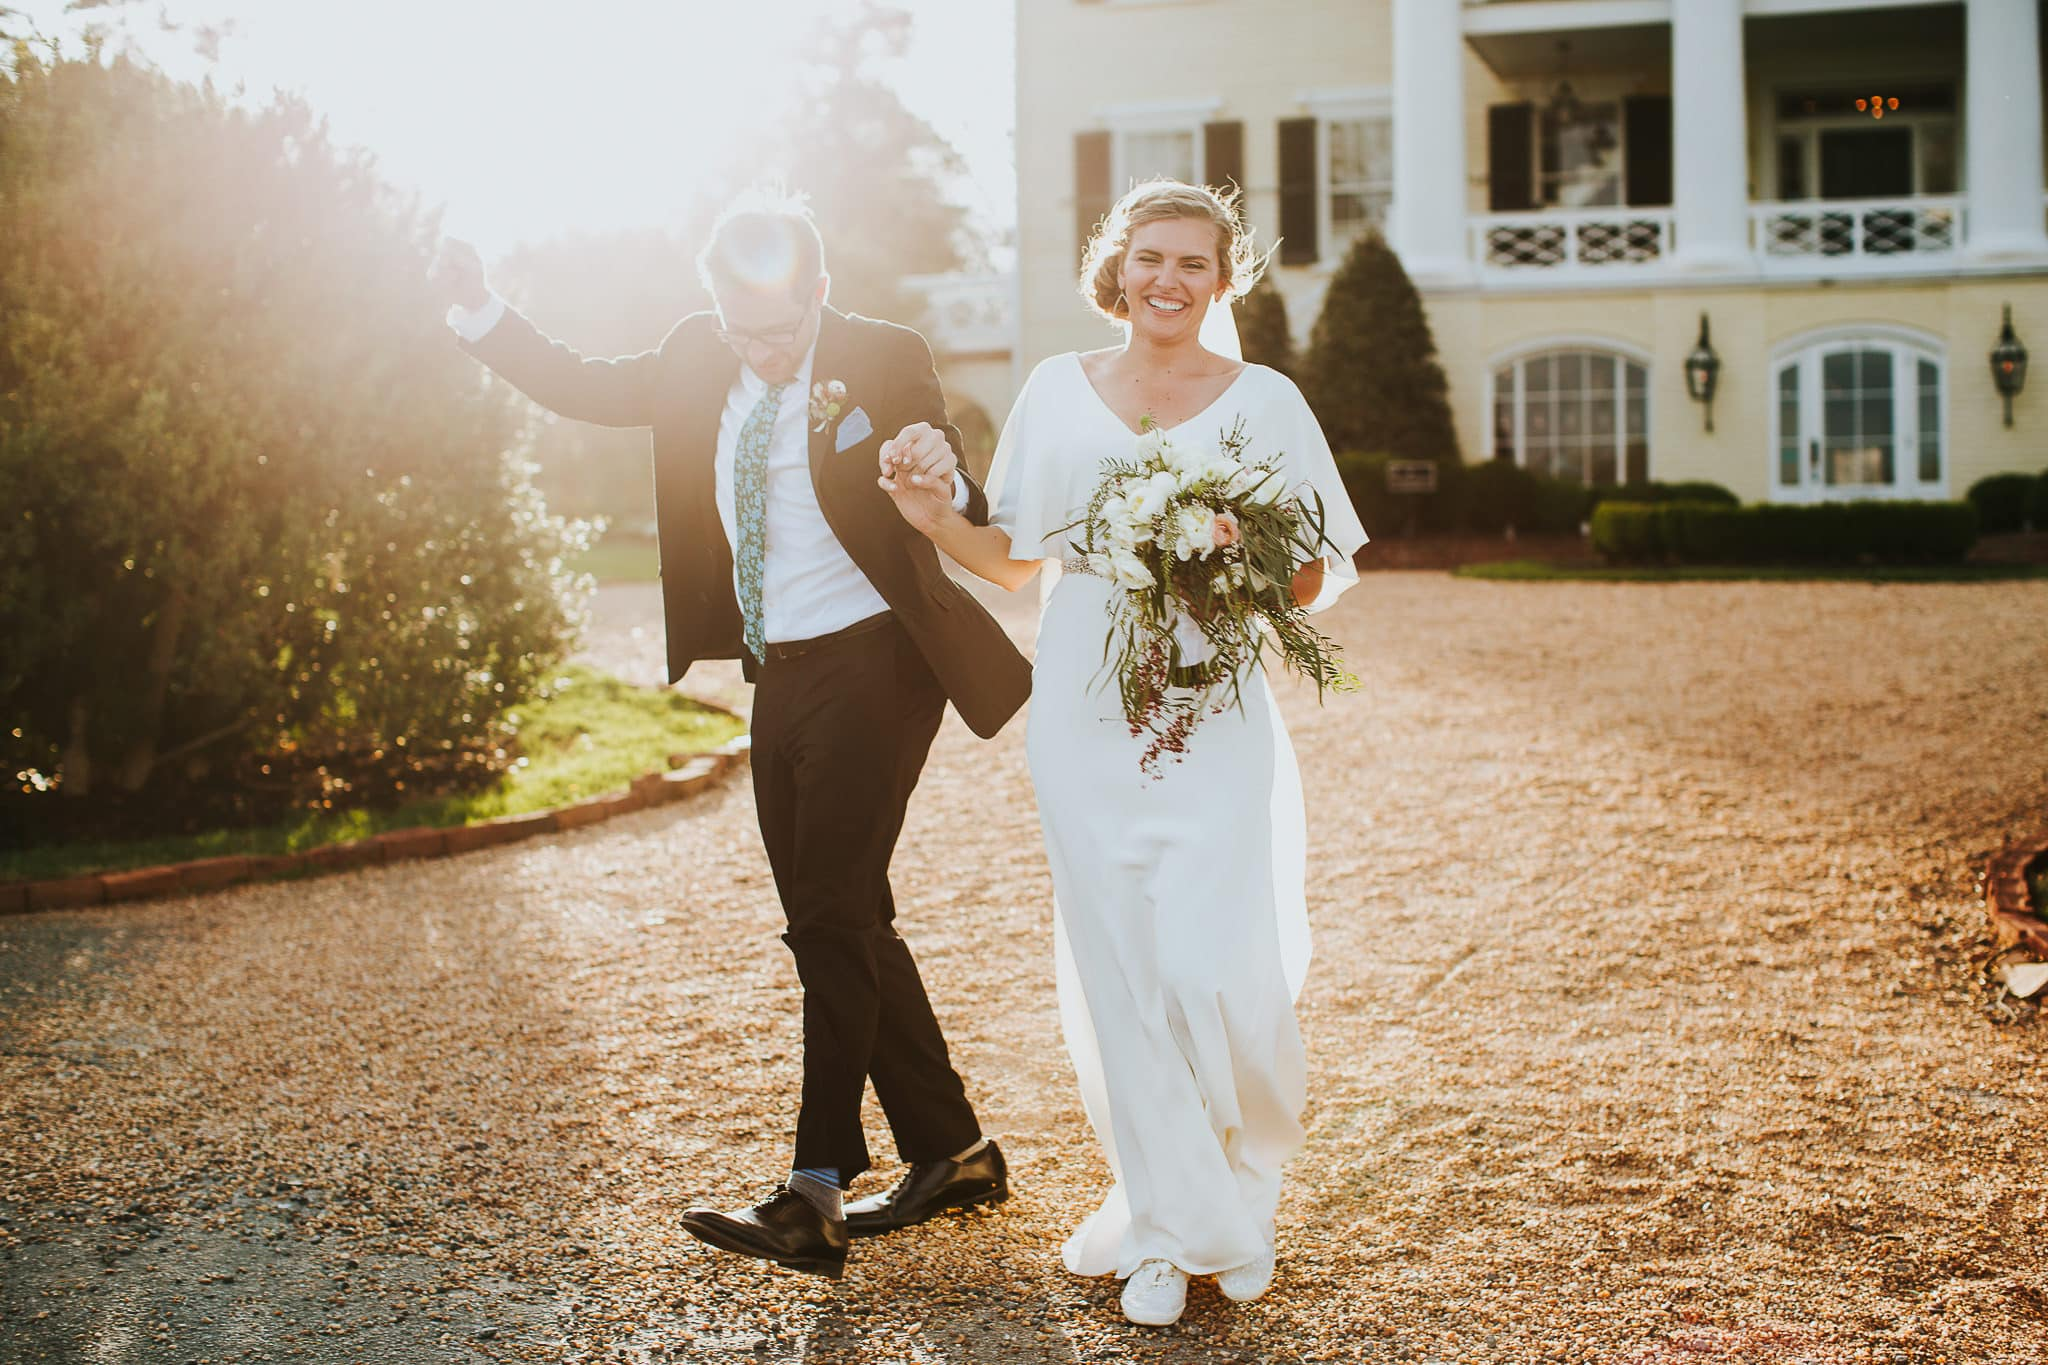 We are so grateful to Justin for photographing our wedding. It was so full of love and magic and happiness, and we have it all on film thanks to him.